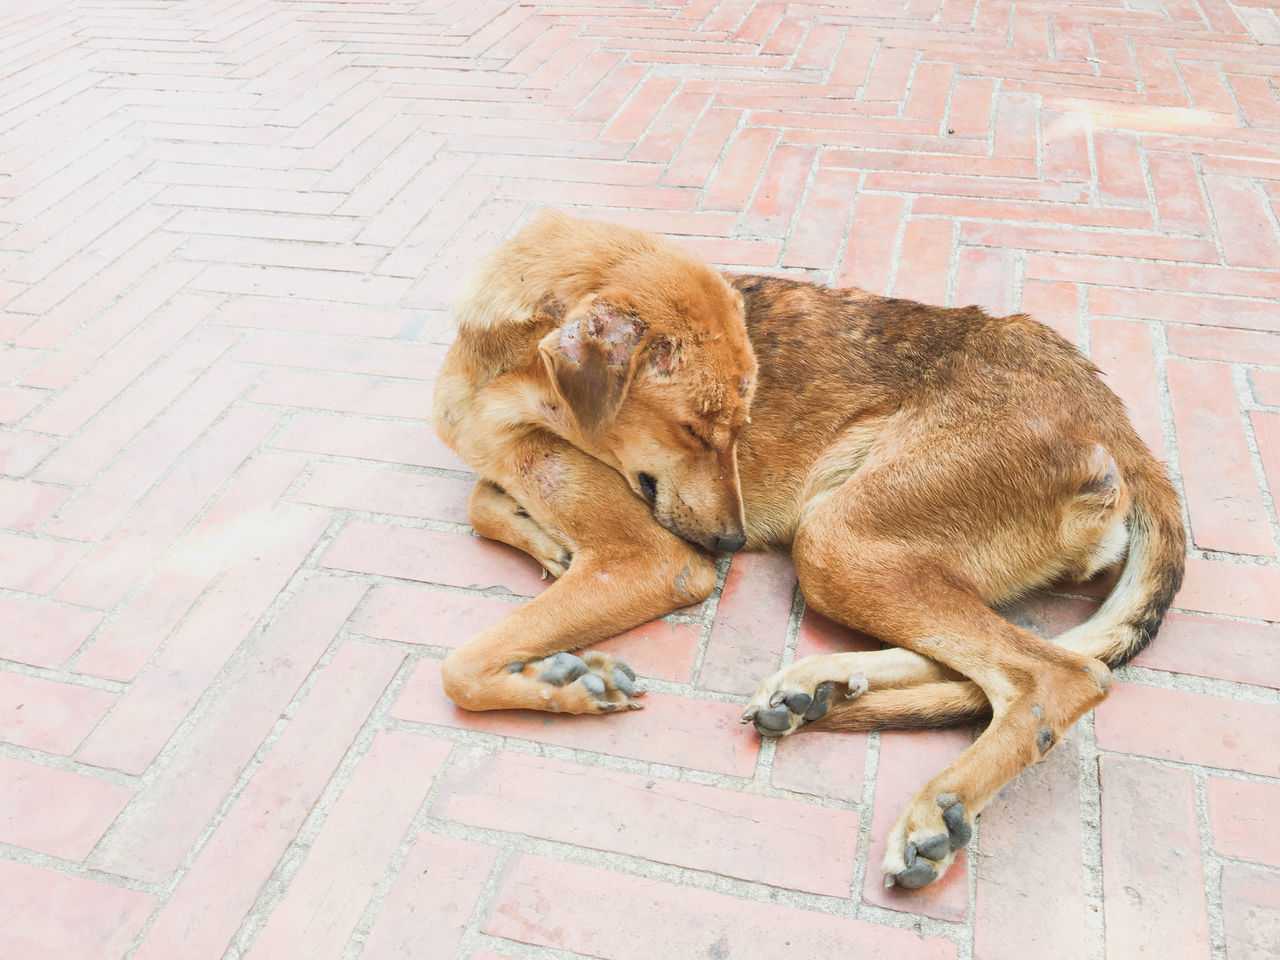 Animal Themes Day Dog Dog Skin Scabs Domestic Animals Lying Down Mammal No People Old Dog One Animal Outdoors Pets Scab Sick Sleeping